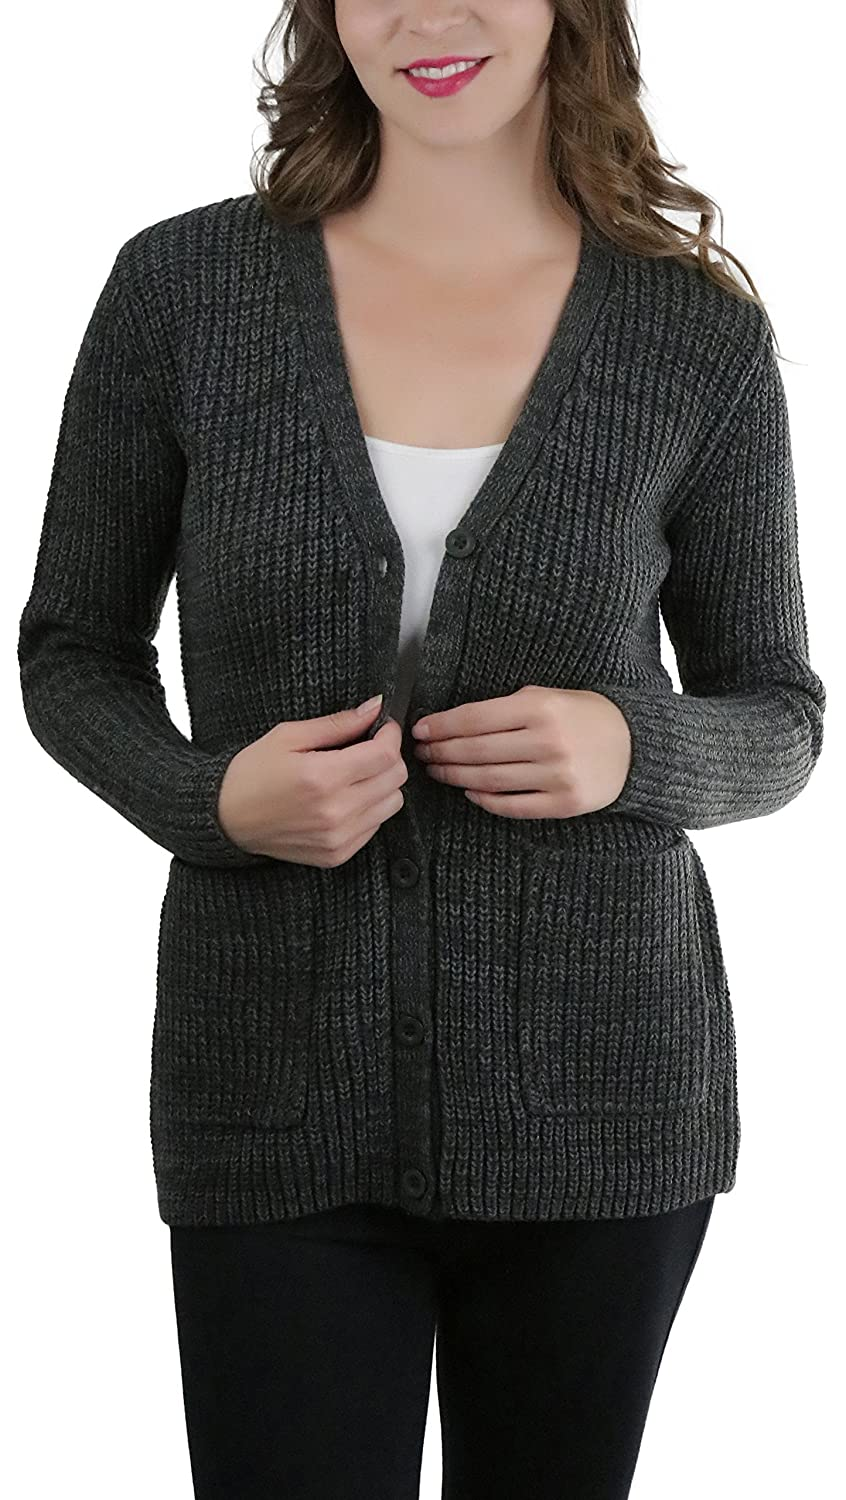 06b1d685947 ToBeInStyle Women's Knitted Acrylic Button Up Cardigan Sweater